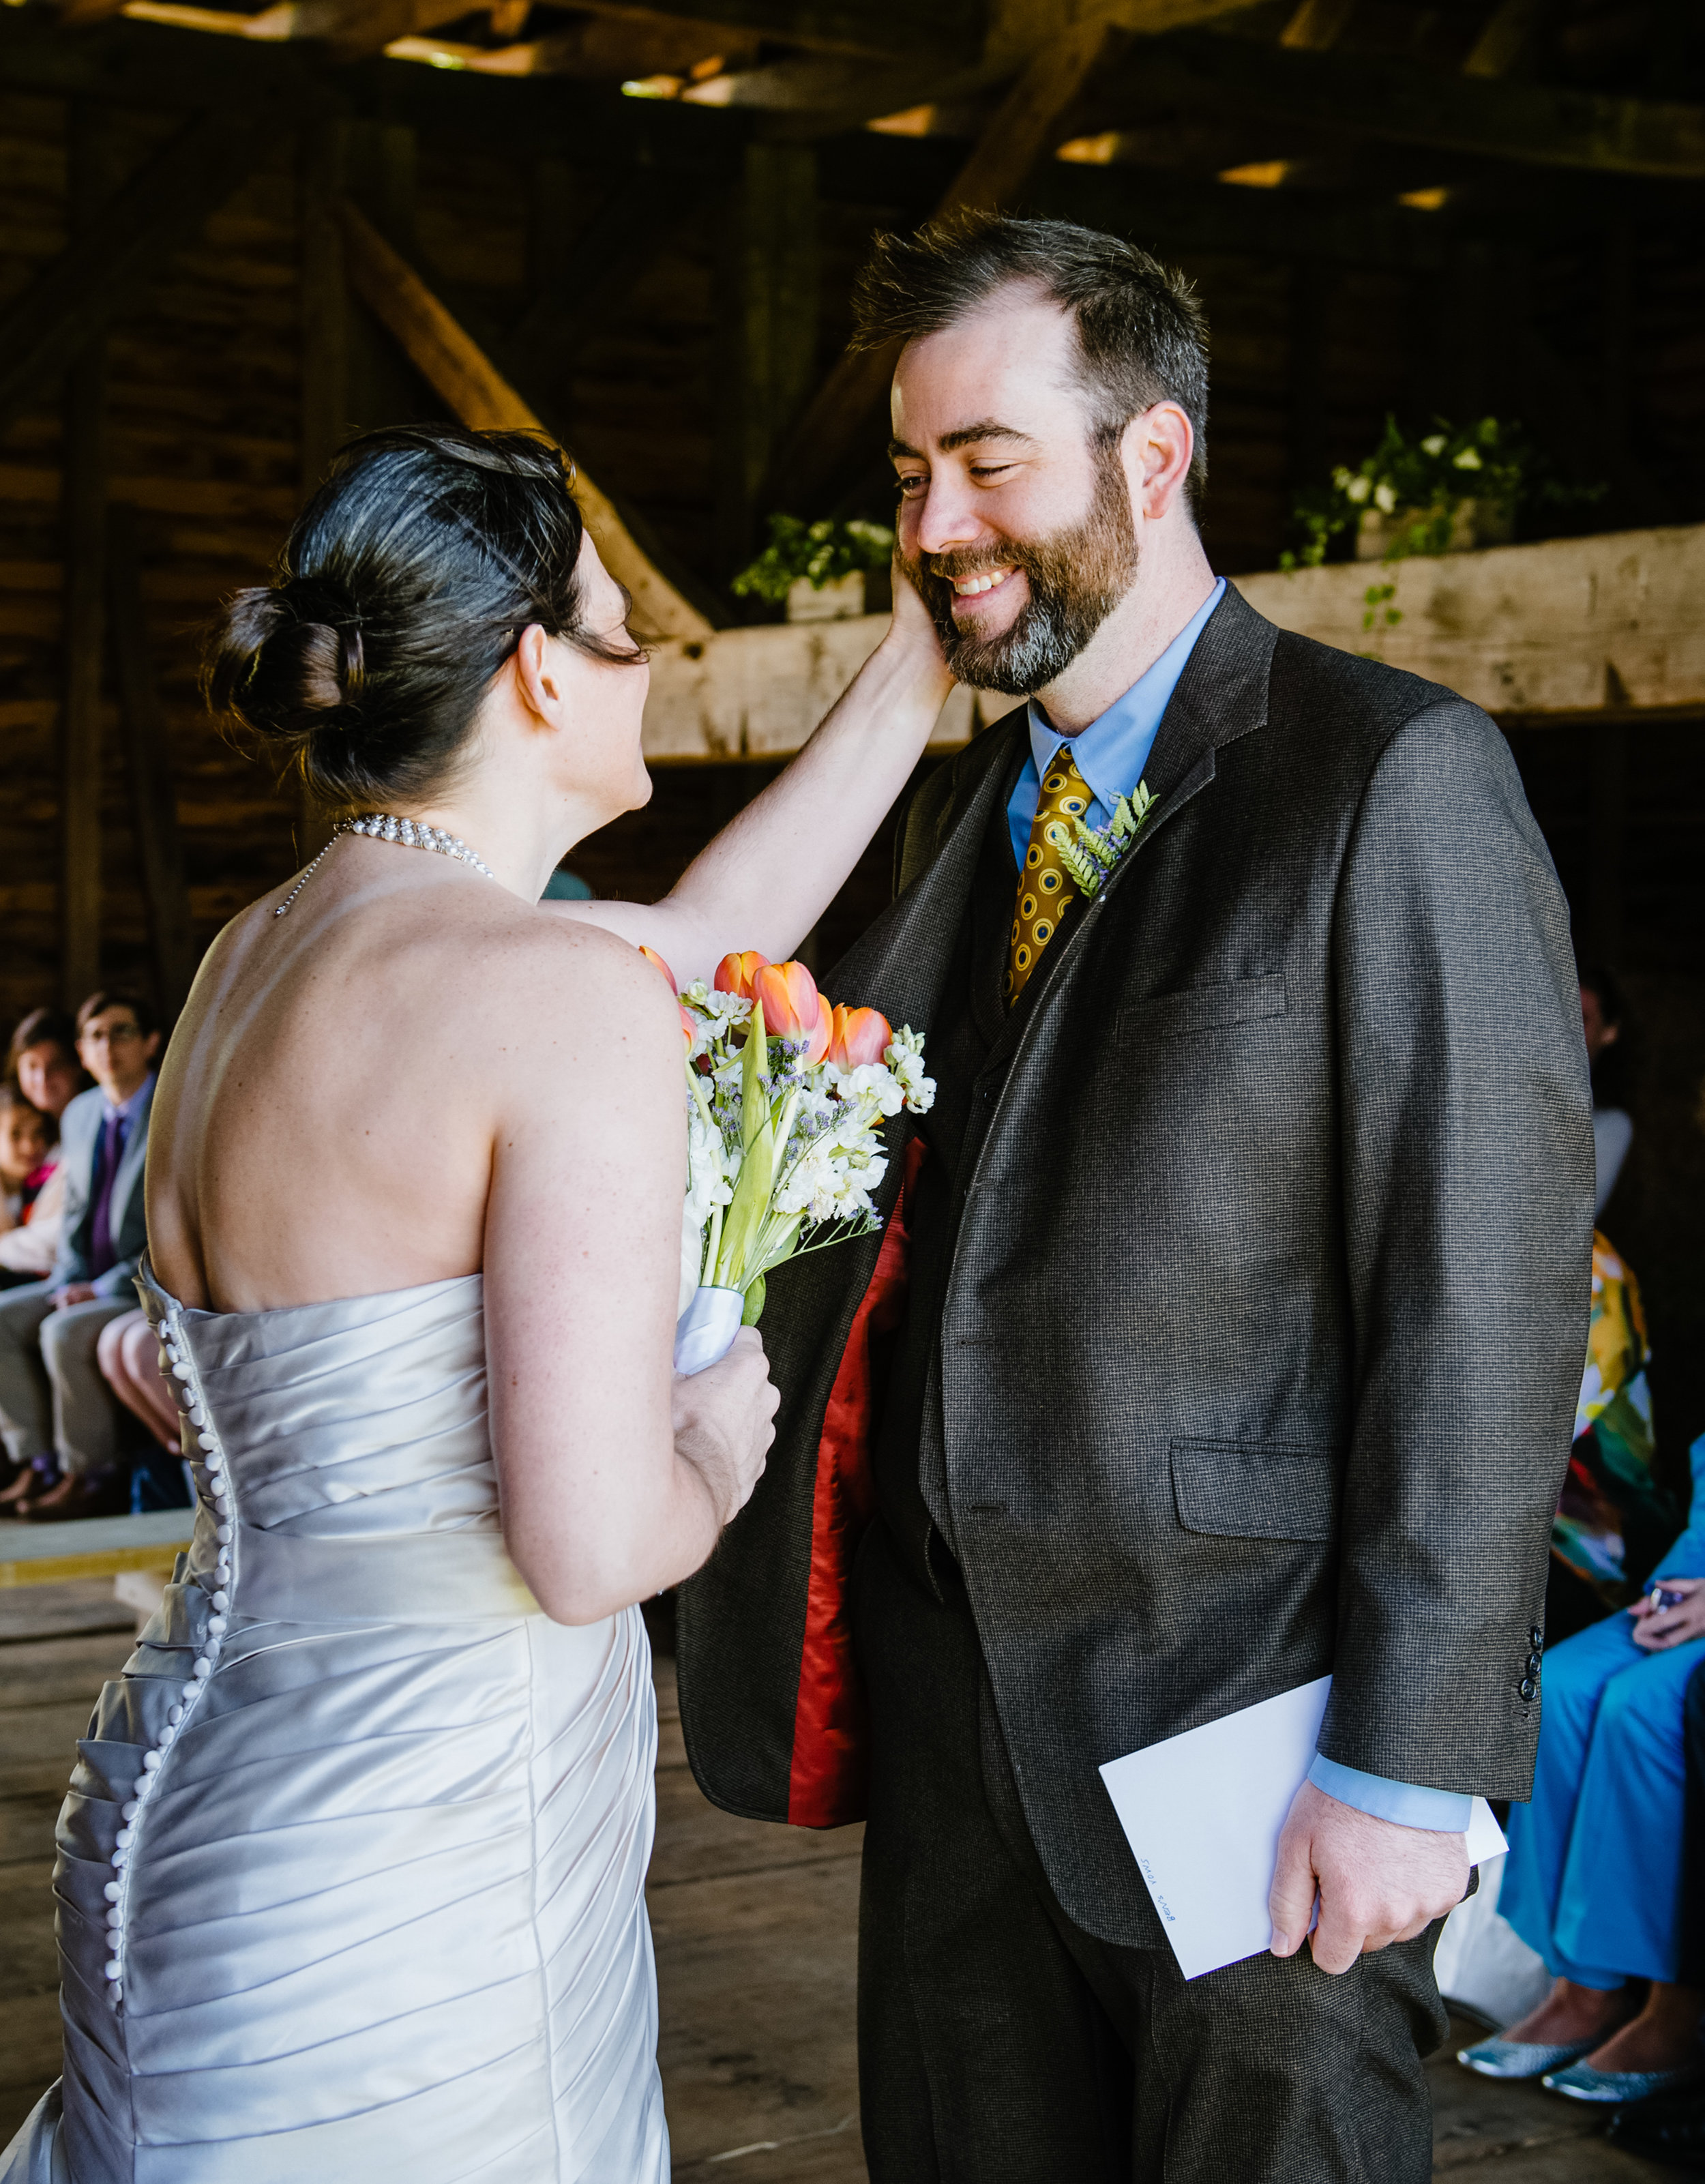 tender-ceremony-moment-Maryland.jpg